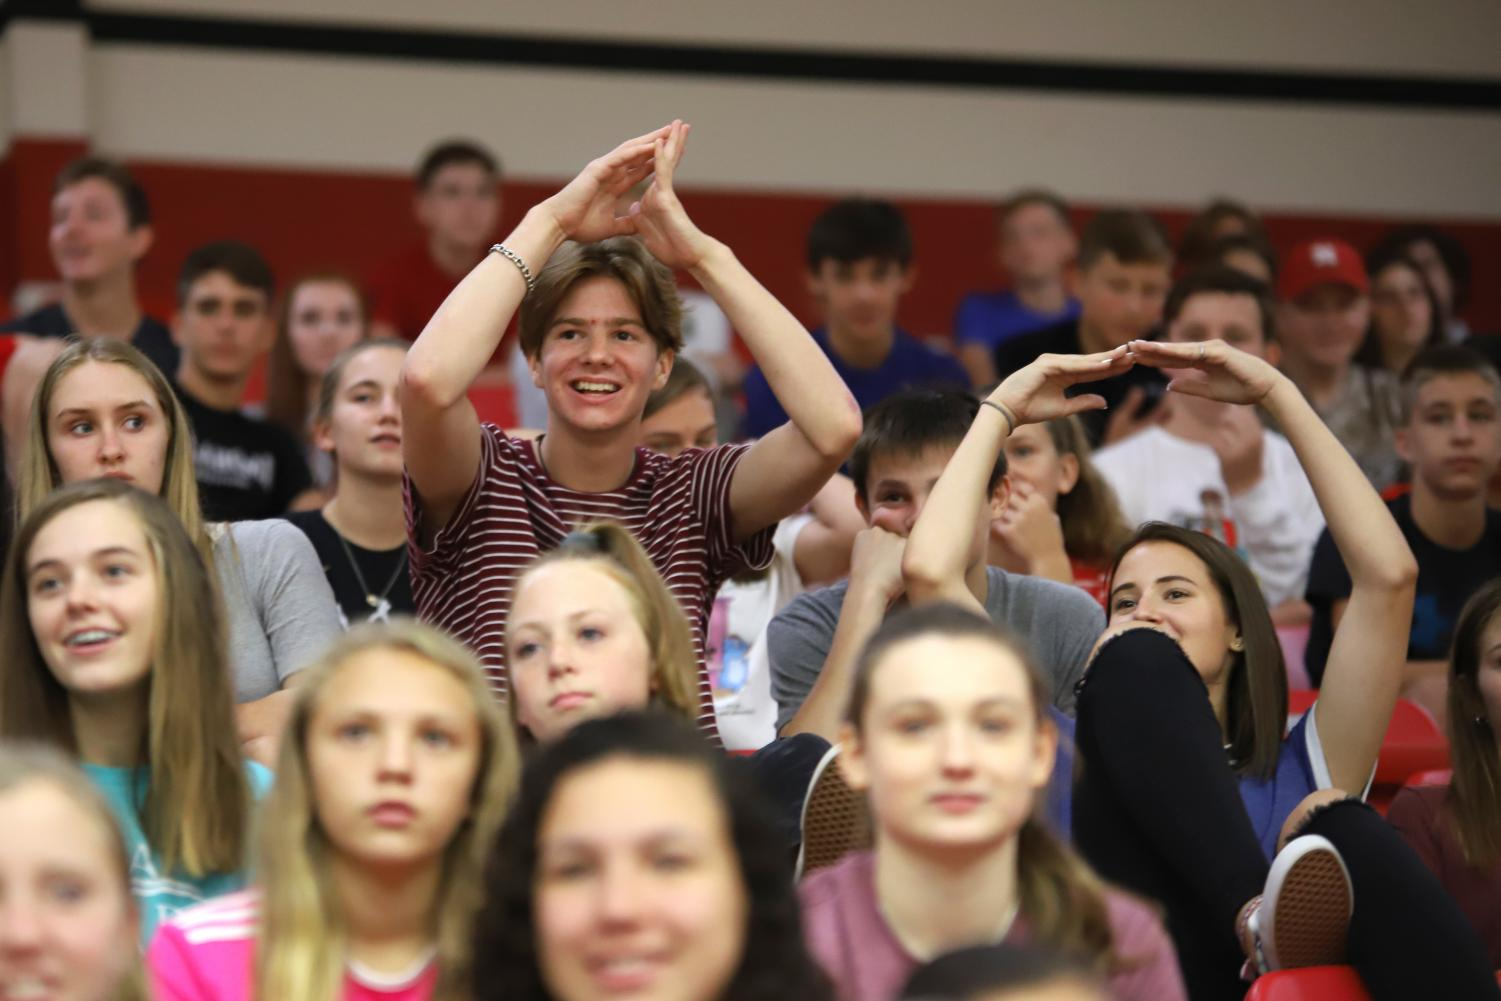 Freshman+Preston+Jones+and+Ashlyn+Martin+participate+in+the+A-O+chant+at+the+pep-rally.+Freshman+were+encouraged+to+stand+up+after+the+initial+explanation+of+the+chant.